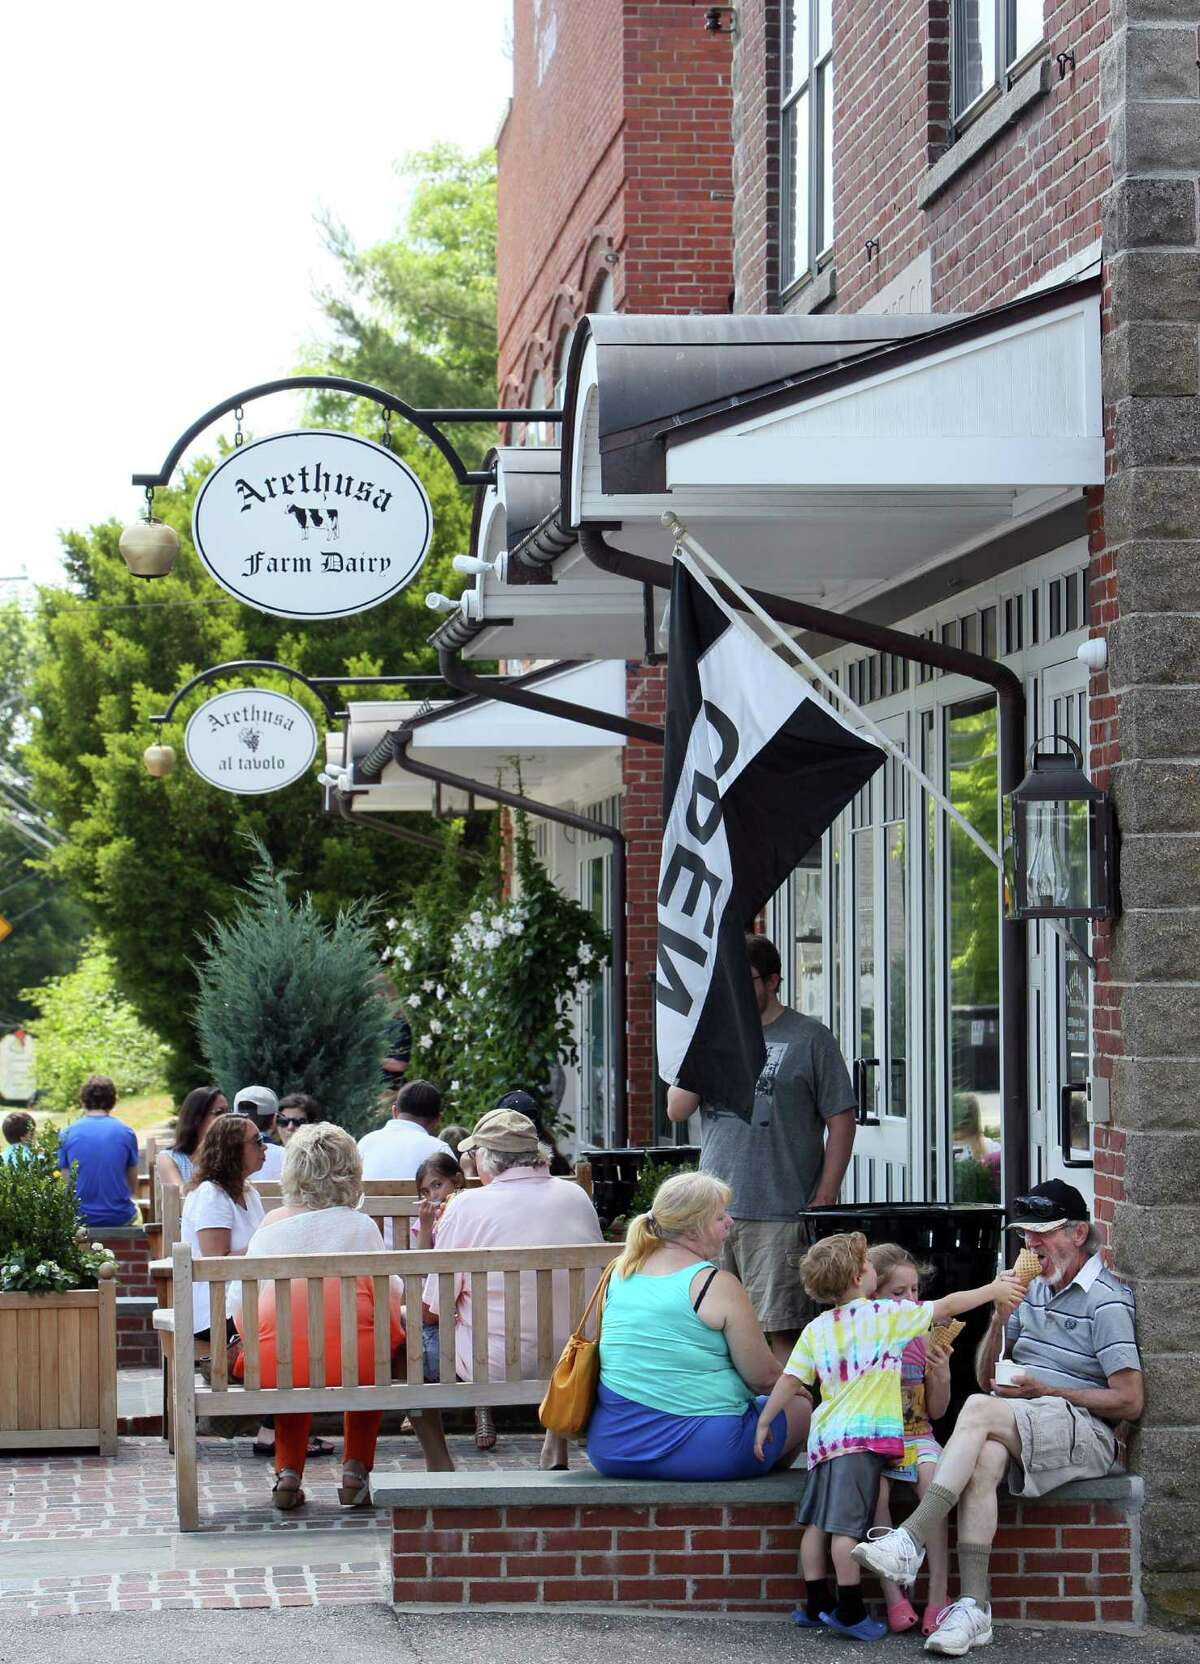 OpenTable's Top 100 Restaurants Based on Diner Reviews Arethusa al Tavolo - Bantam, Connecticut Rating: 4.8 out of 5 stars (644 reviews) Cuisine:Contemporary American Price average: $31 - $50